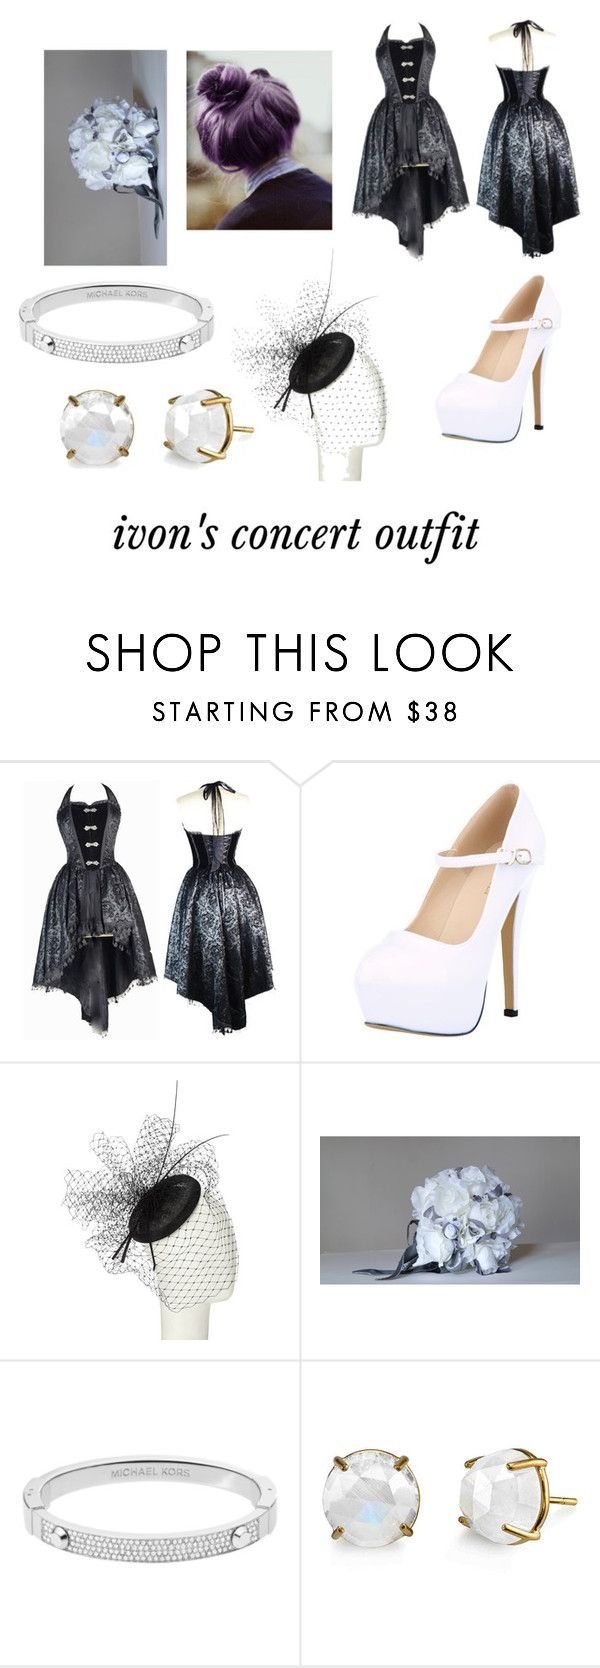 """""""bad romance remake outfit"""" by leftintgeshadows ❤ liked on Polyvore featuring John Lewis and Michael Kors"""